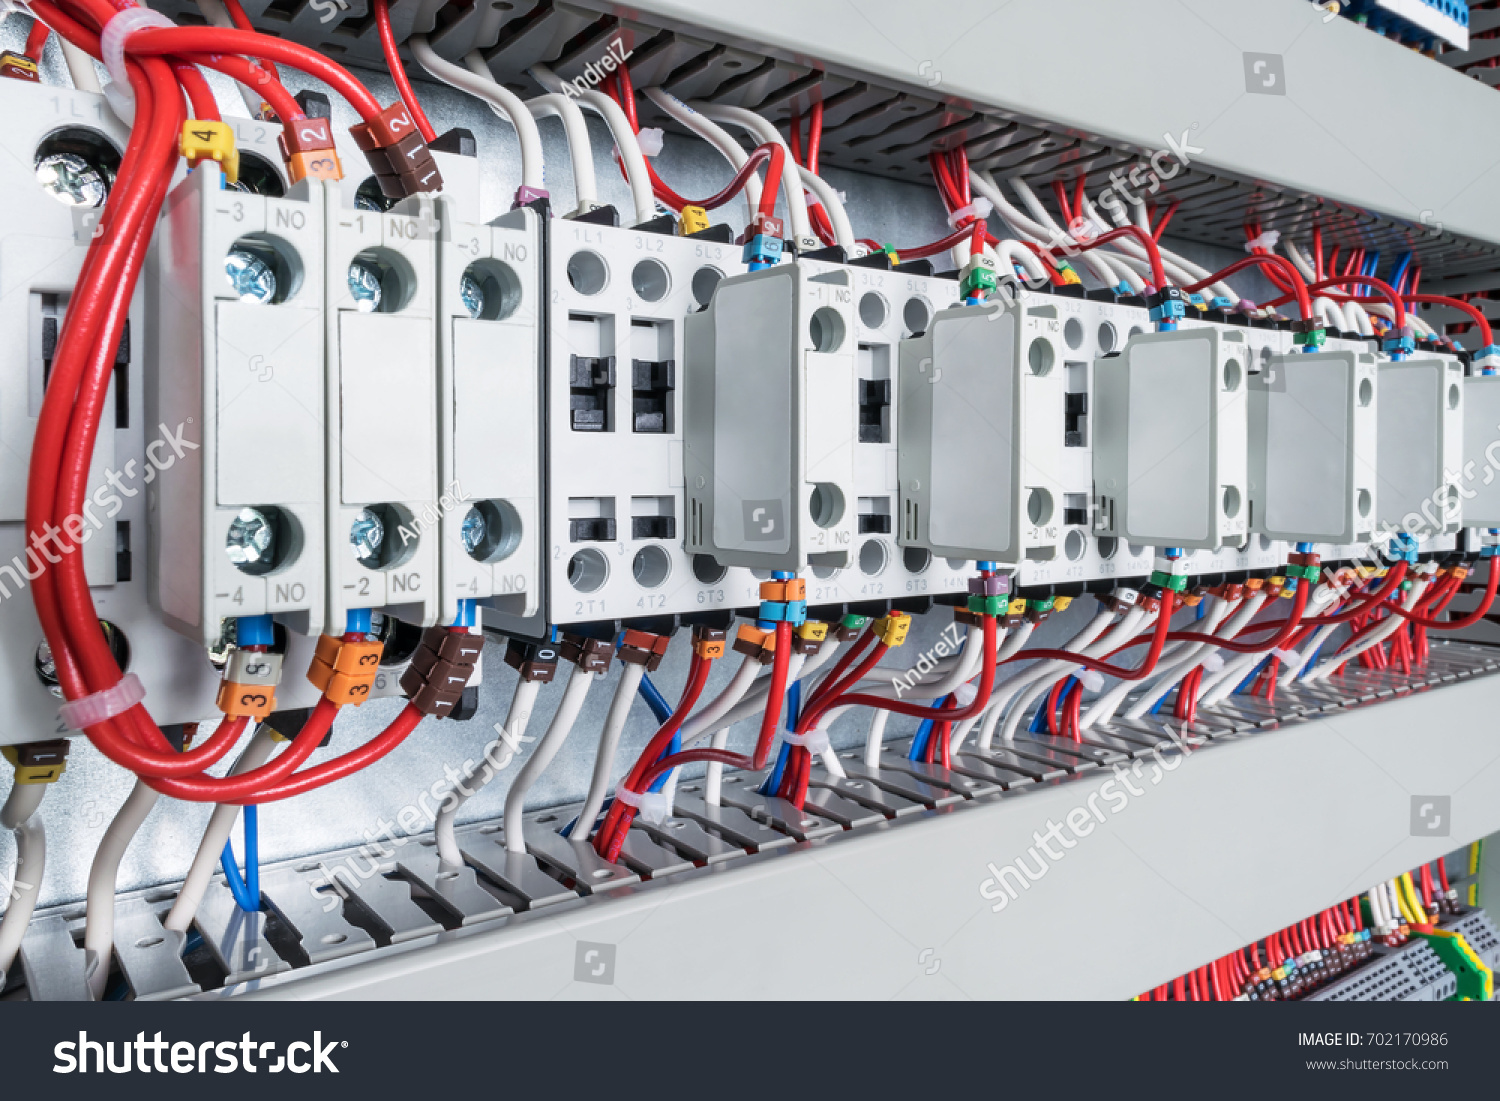 Several Contactors Arranged In A Row In An Electrical Closet. The  Contactors Connected Wire Number